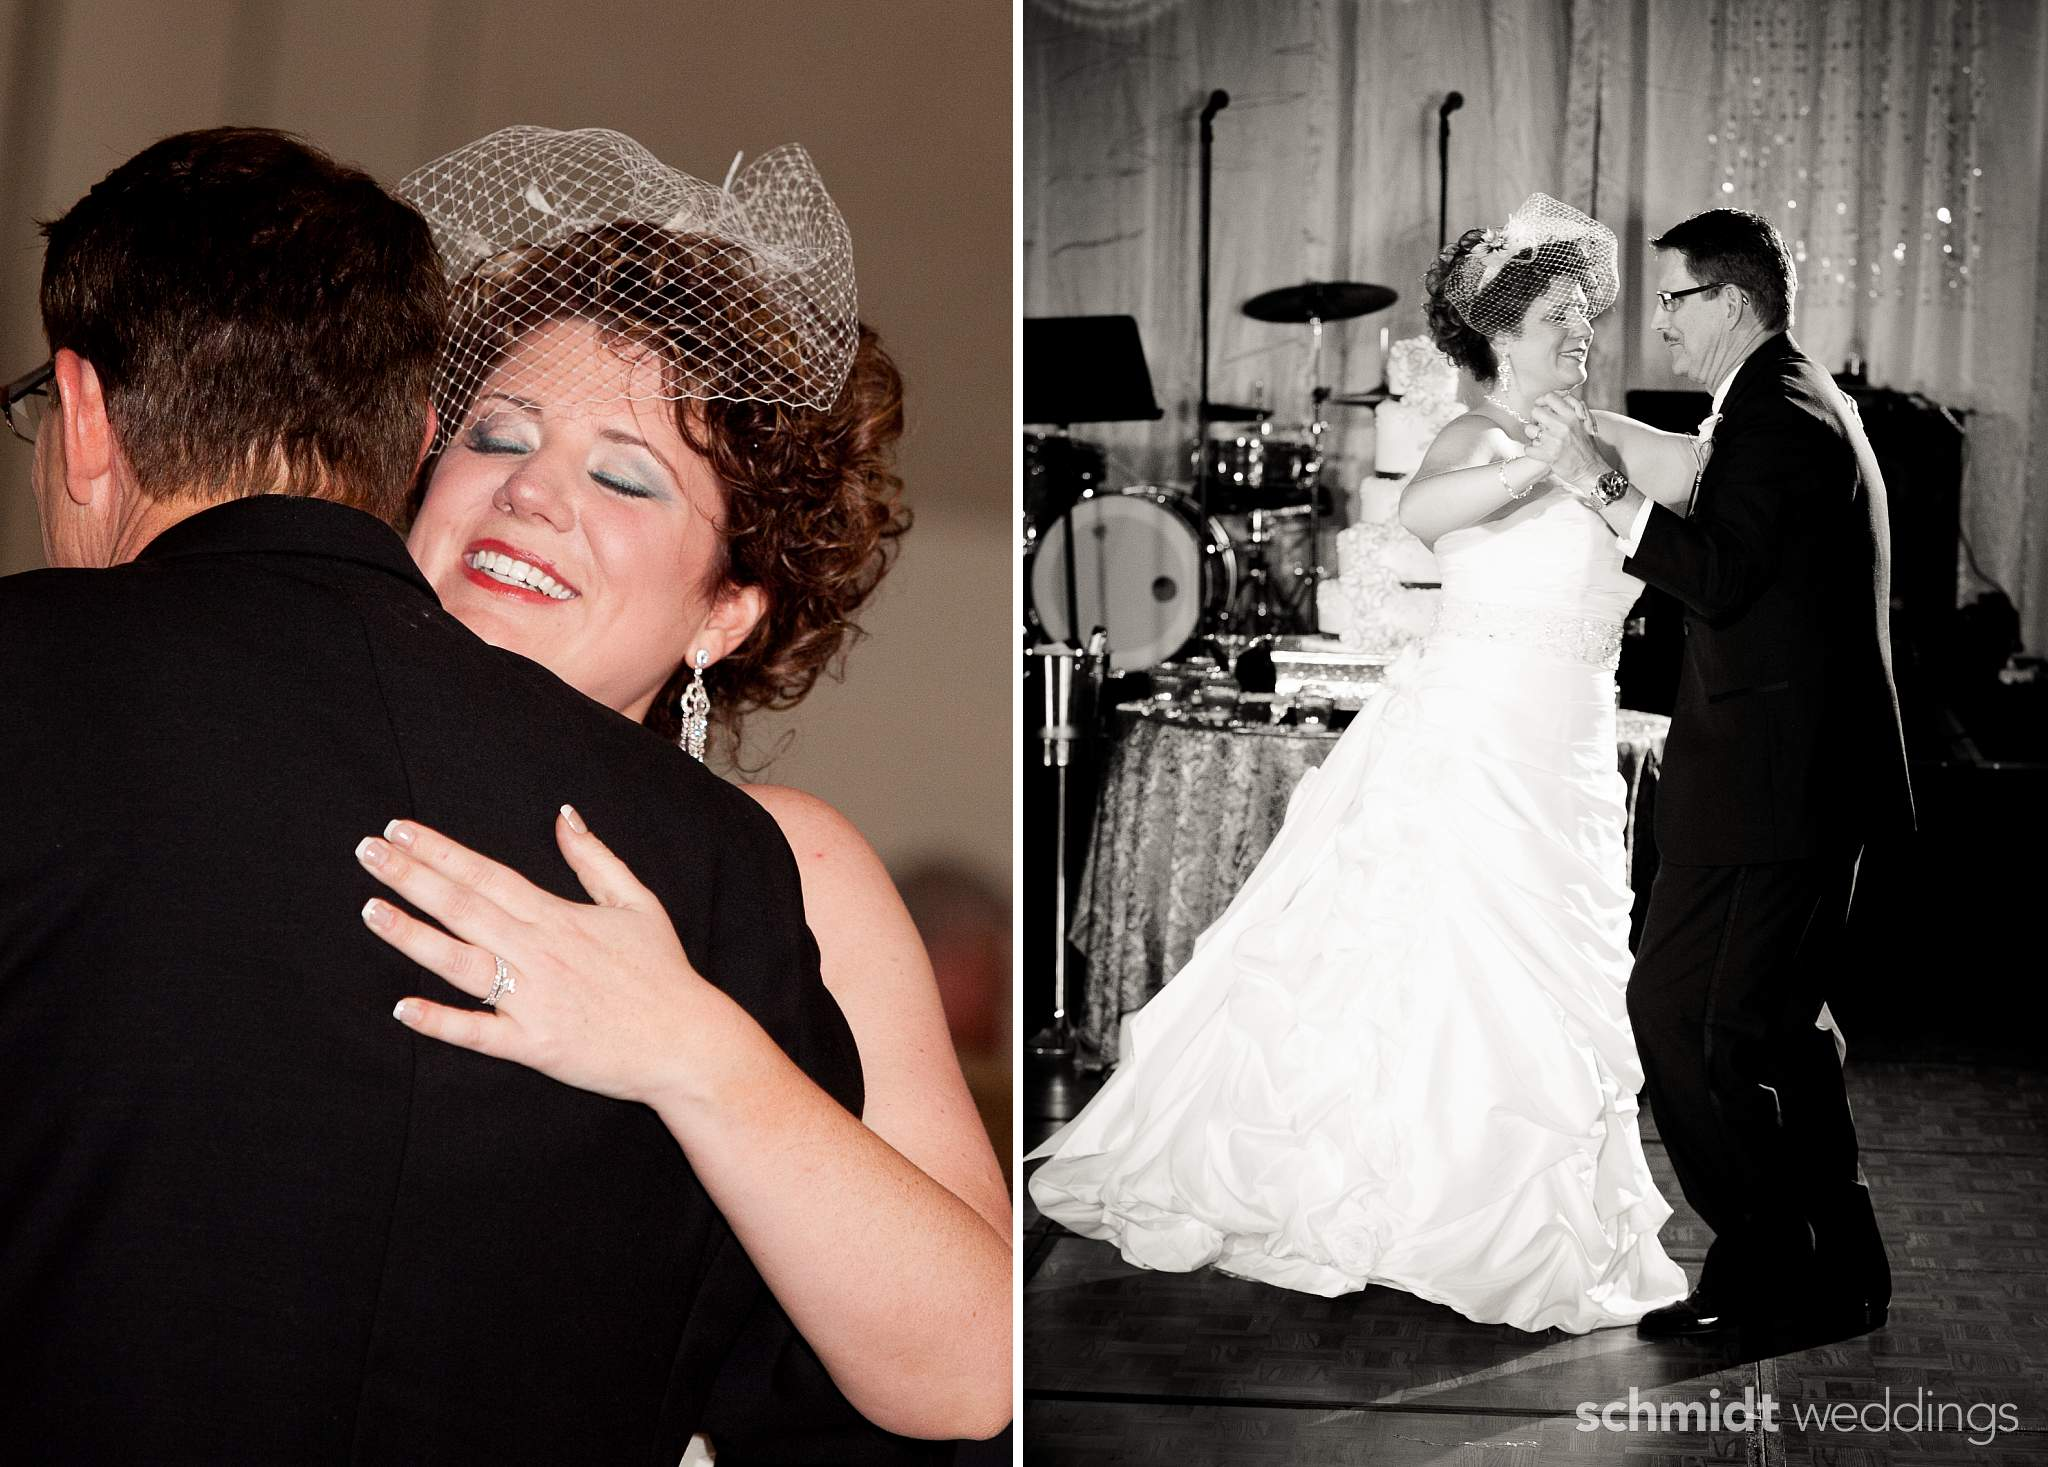 First Dance wedding reception with fun innovative decorating ideas artistic photos tom schmidt